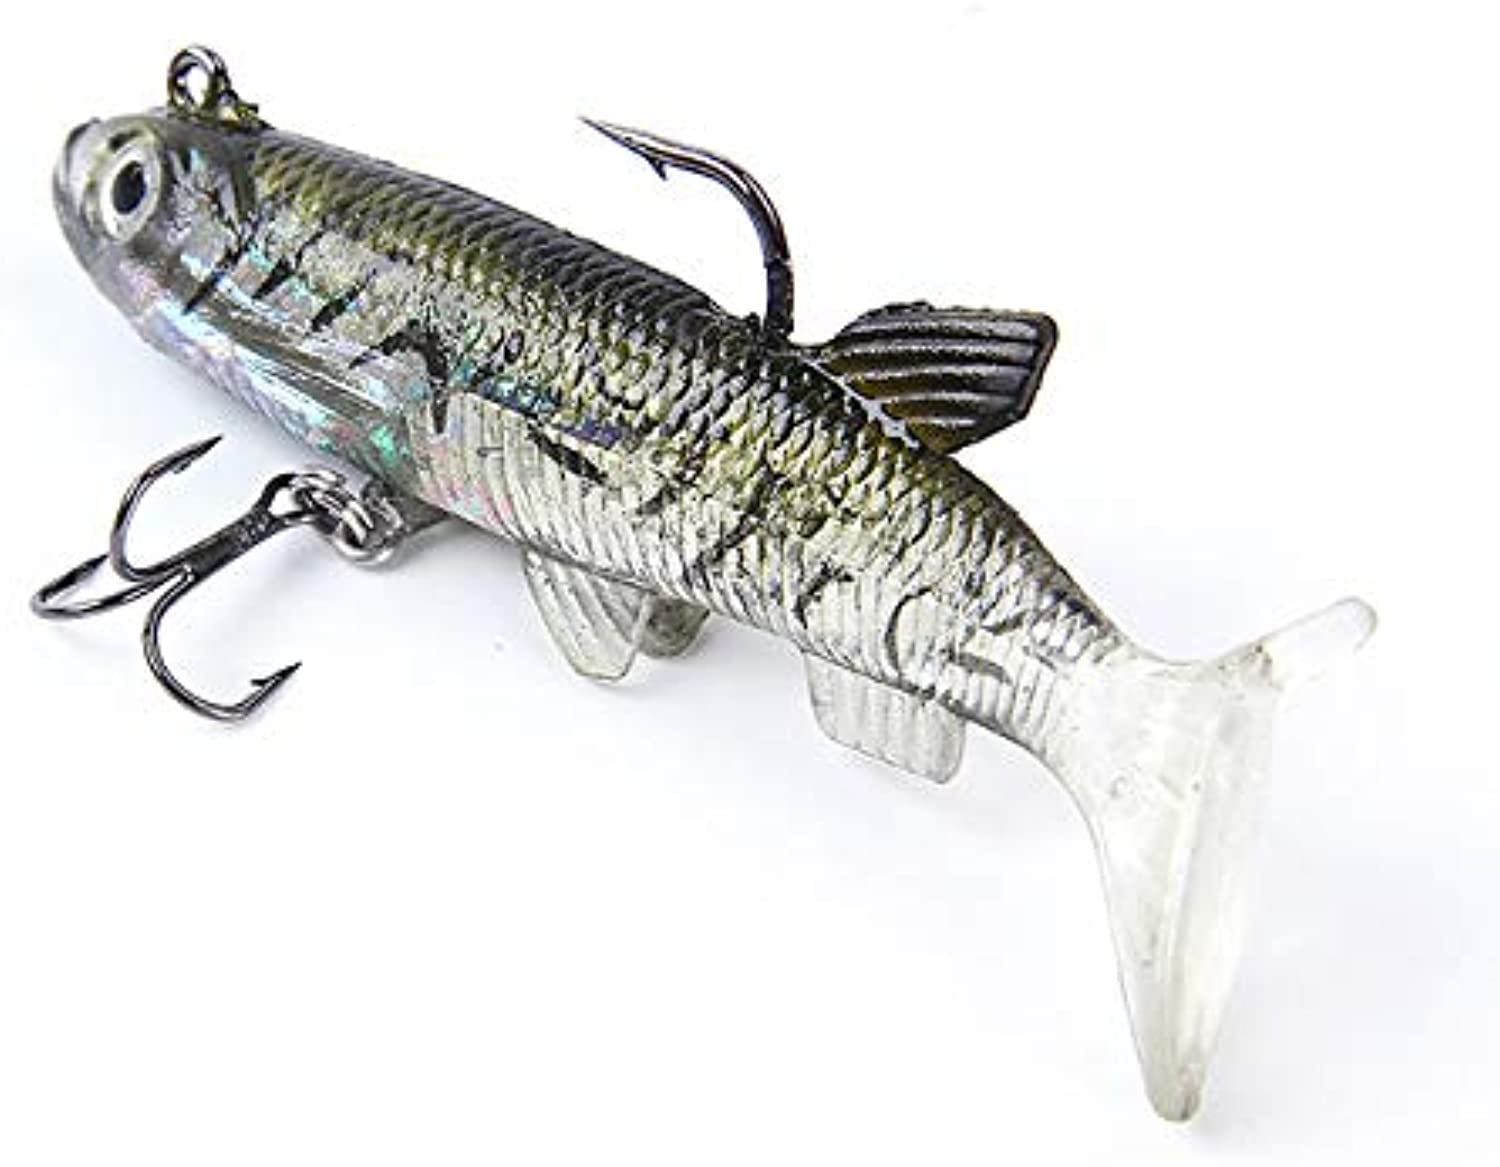 Fish King 5pcs 6 8 10cm Soft s Head Jig Fishing Lure 3D Eyes T Plastic Pike Lure Fishing Tackle 5565   042, 8cm 5PCS